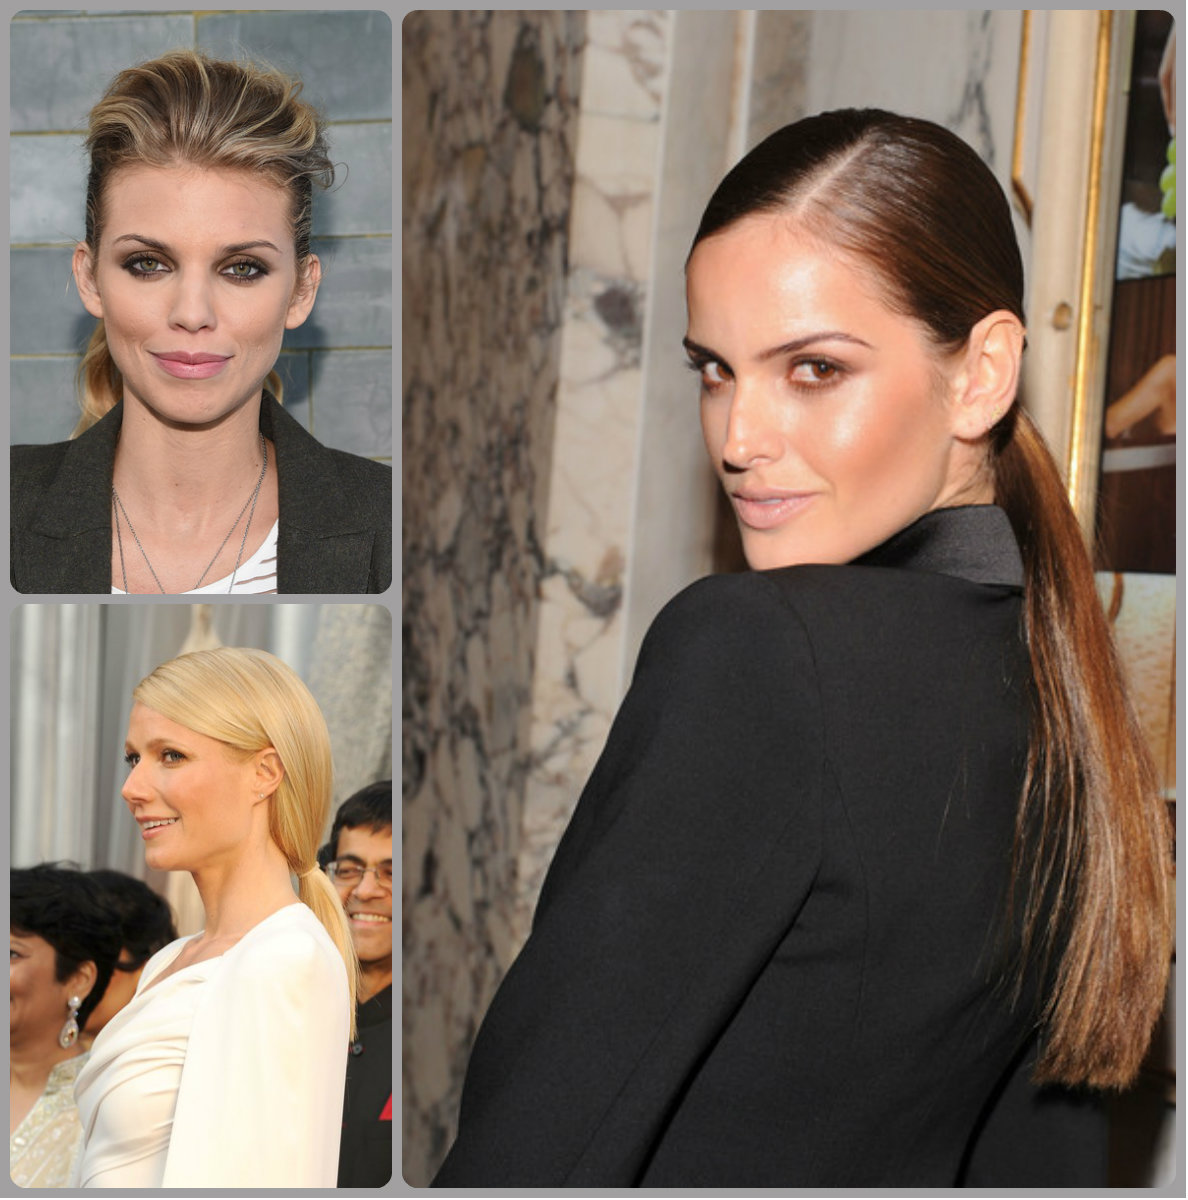 Ponytail Hairstyles For Work 2015